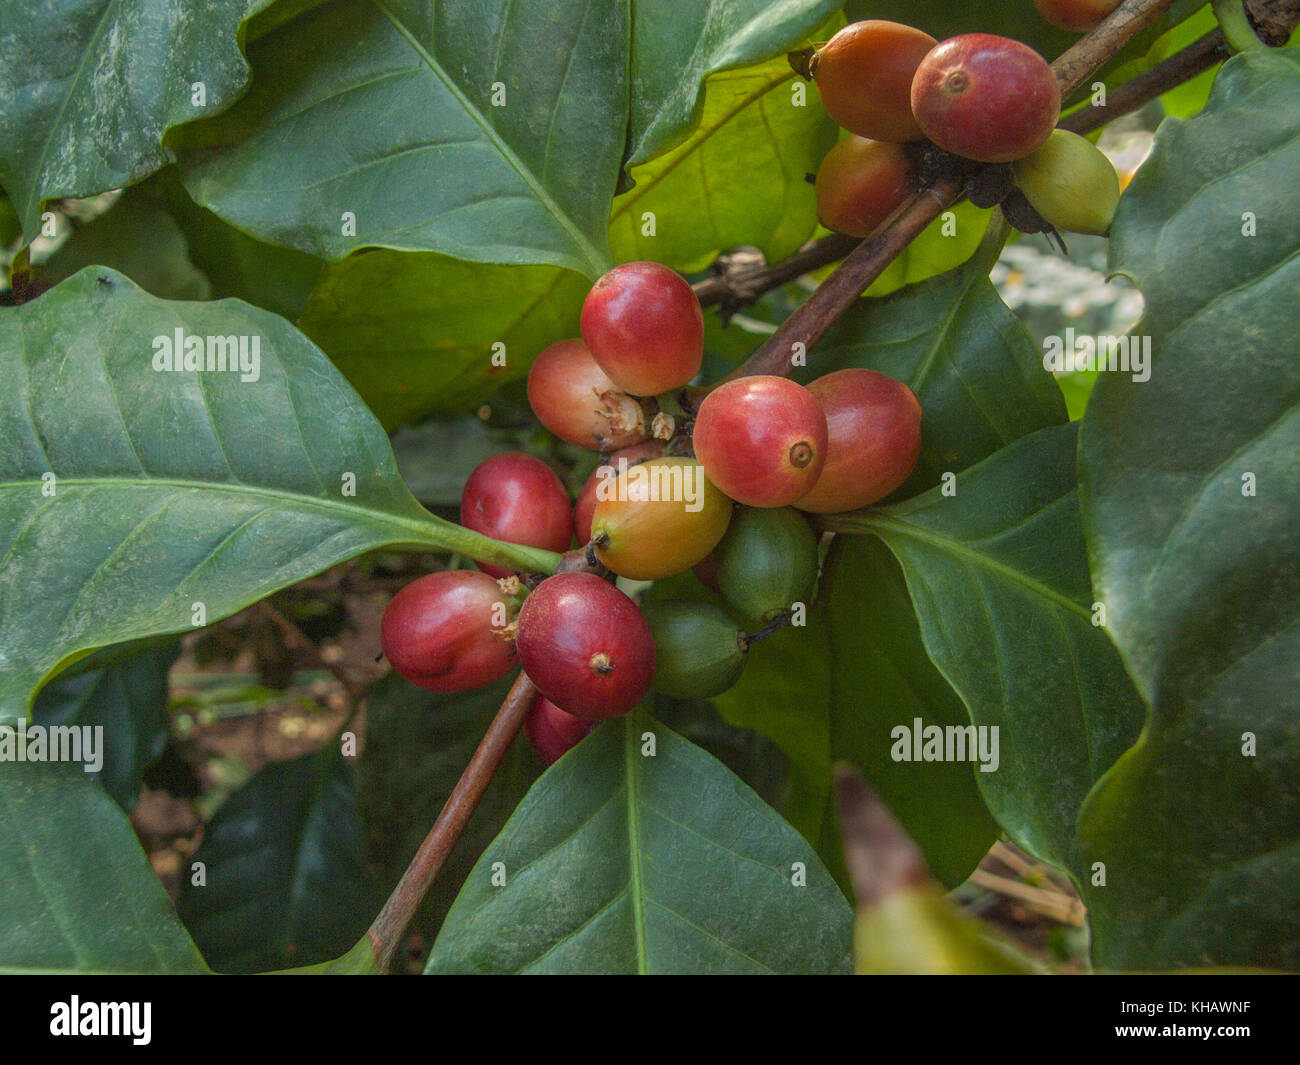 Foliage and berries of the Arabian Coffee plant (Coffea arabica). - Stock Image